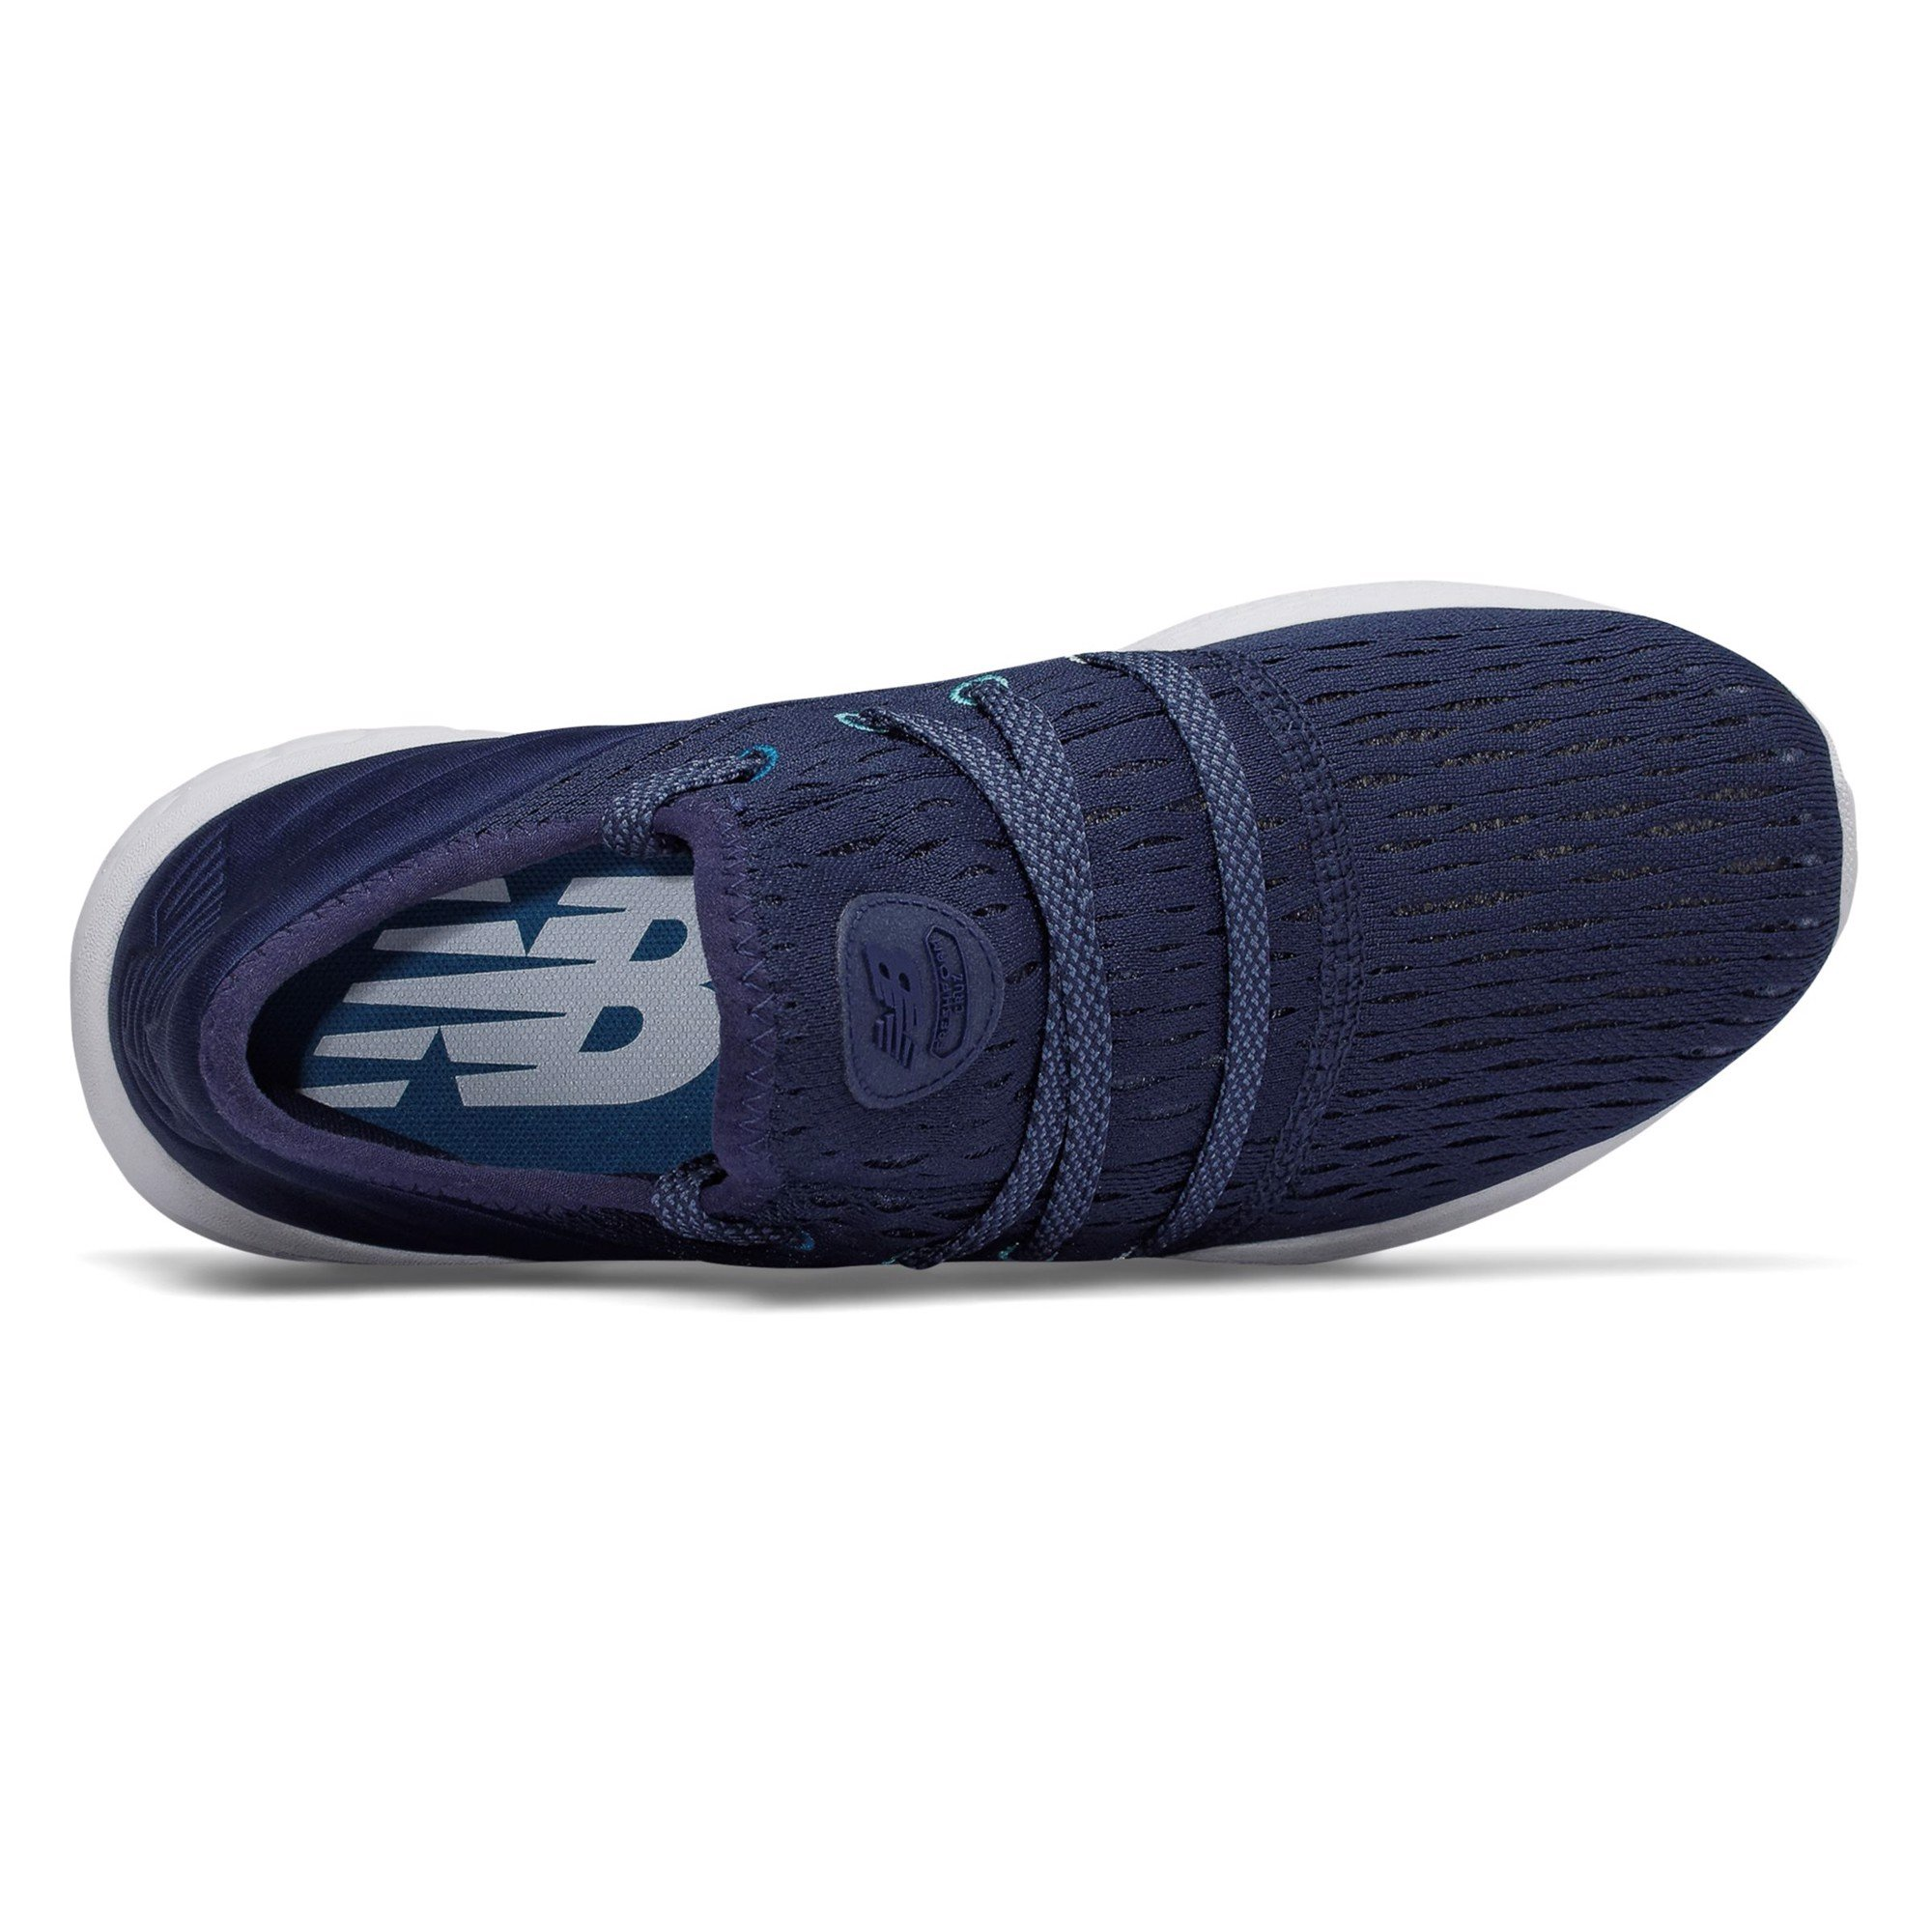 New Balance Fresh Foam Cruz v2 Breathe - Navy